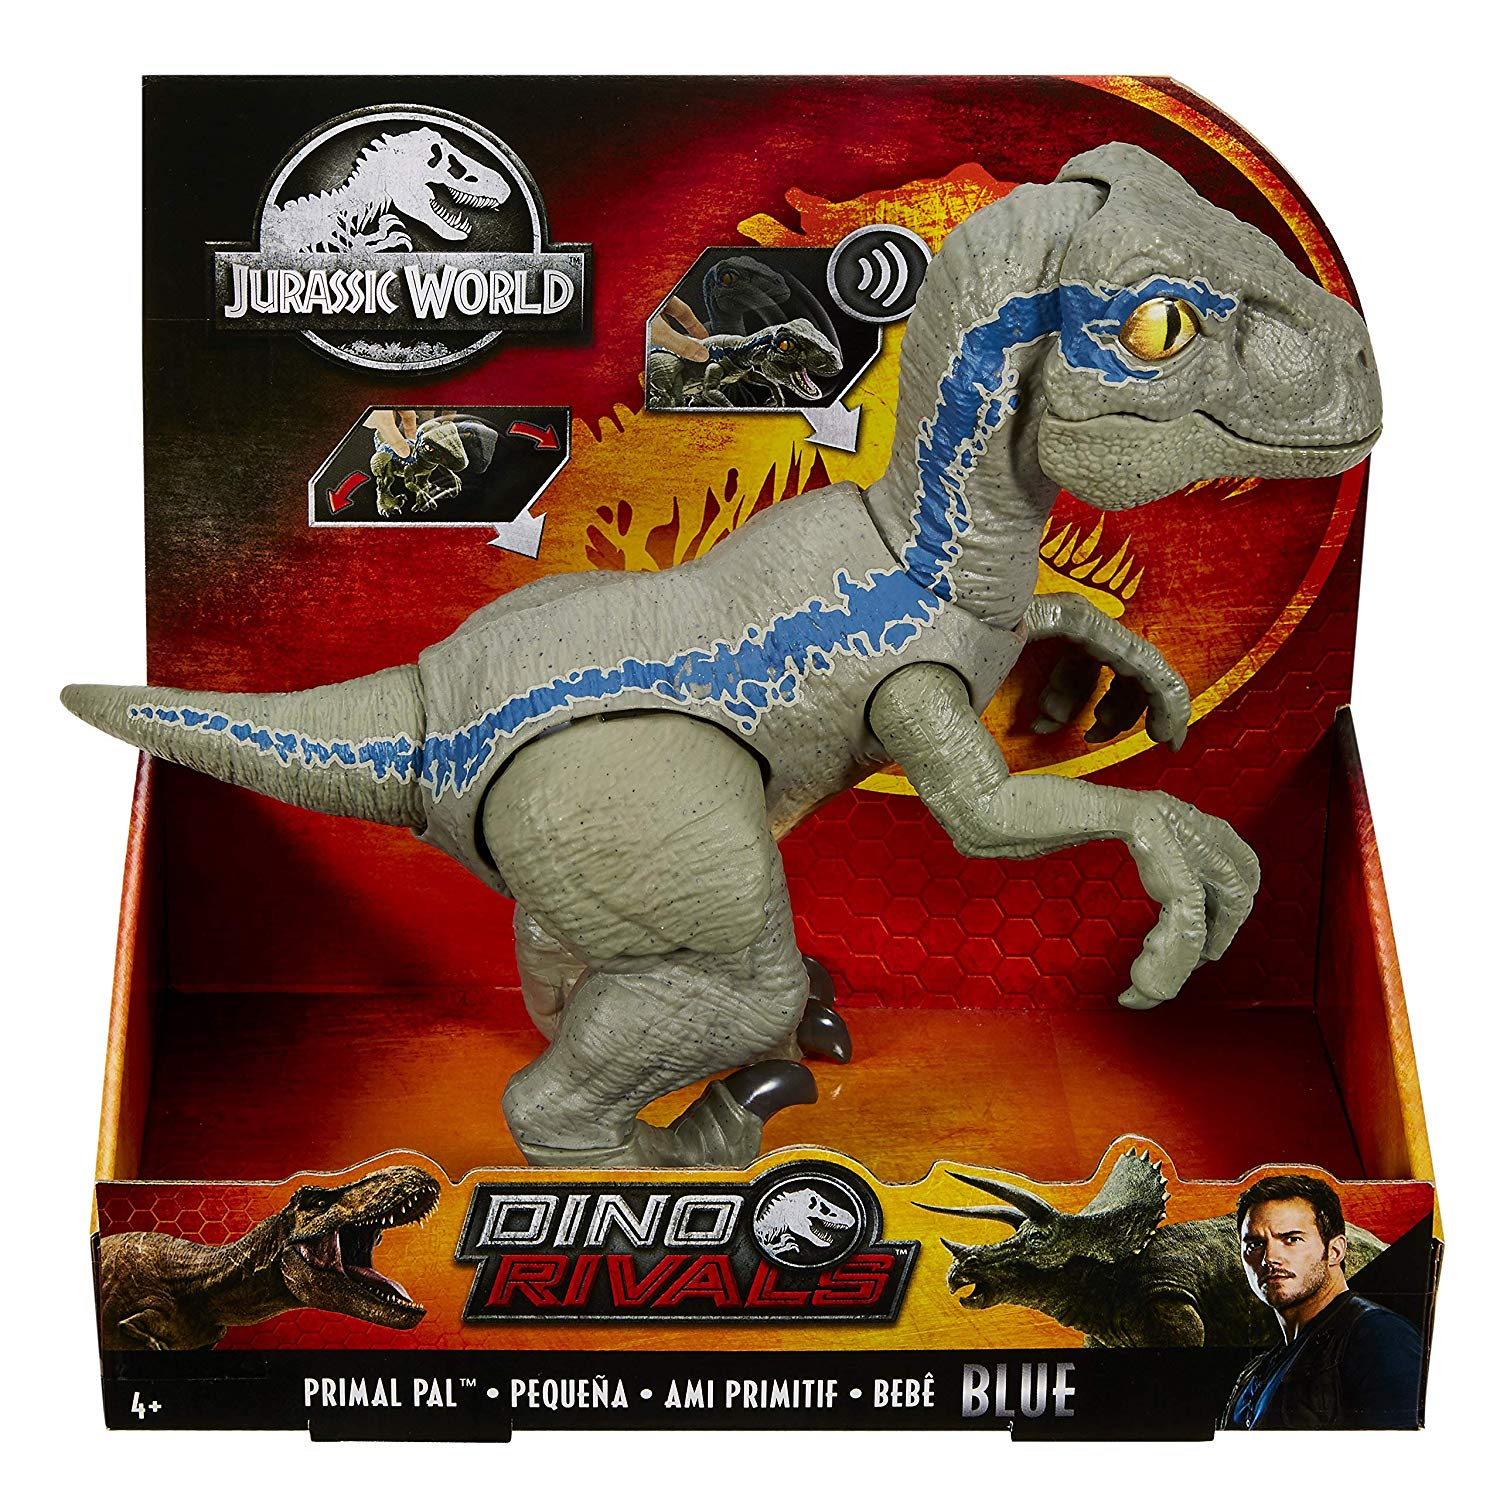 JURASSIC WORLD PRIMAL PAL BLUE GFD40 - V22620